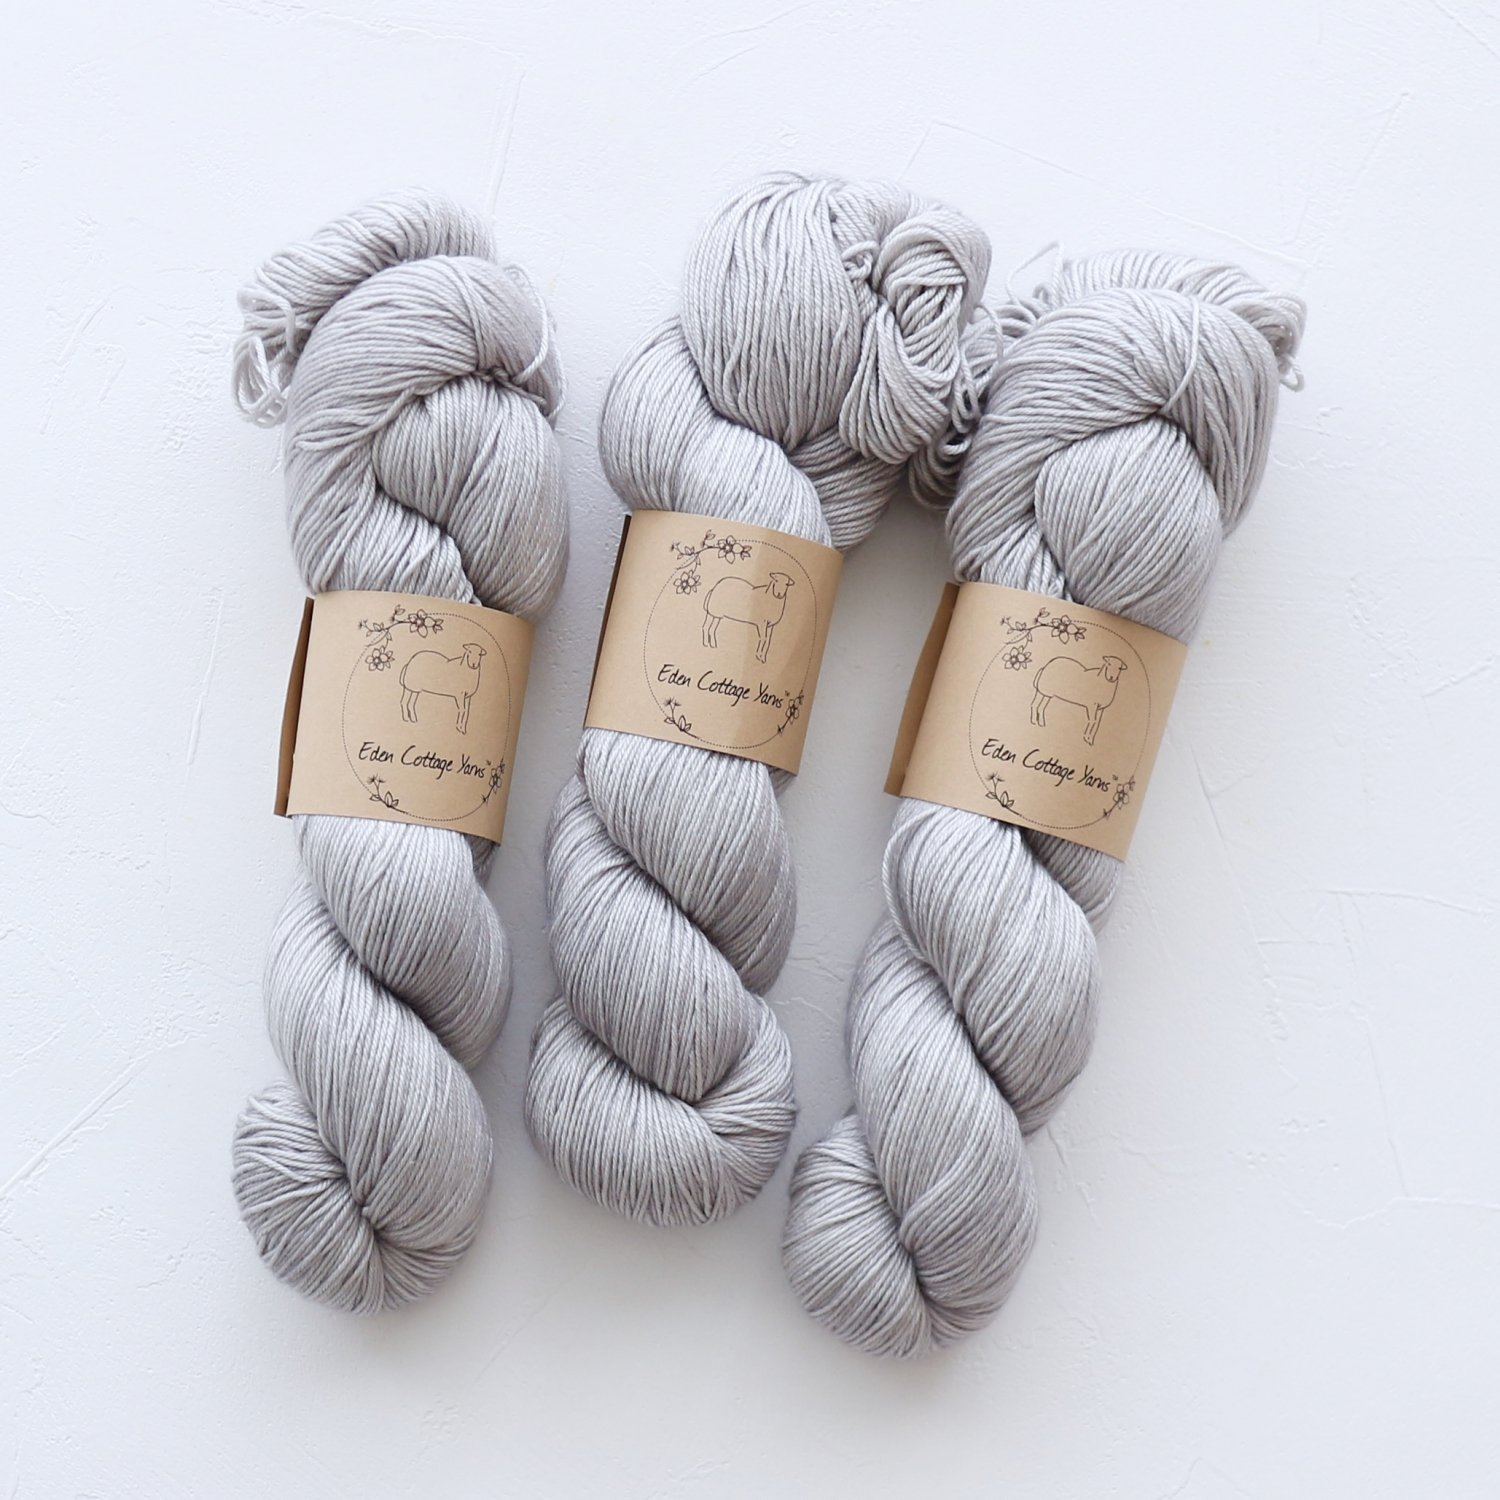 【Eden Cottage Yarns】<br>Titus 4ply<br>Echinops